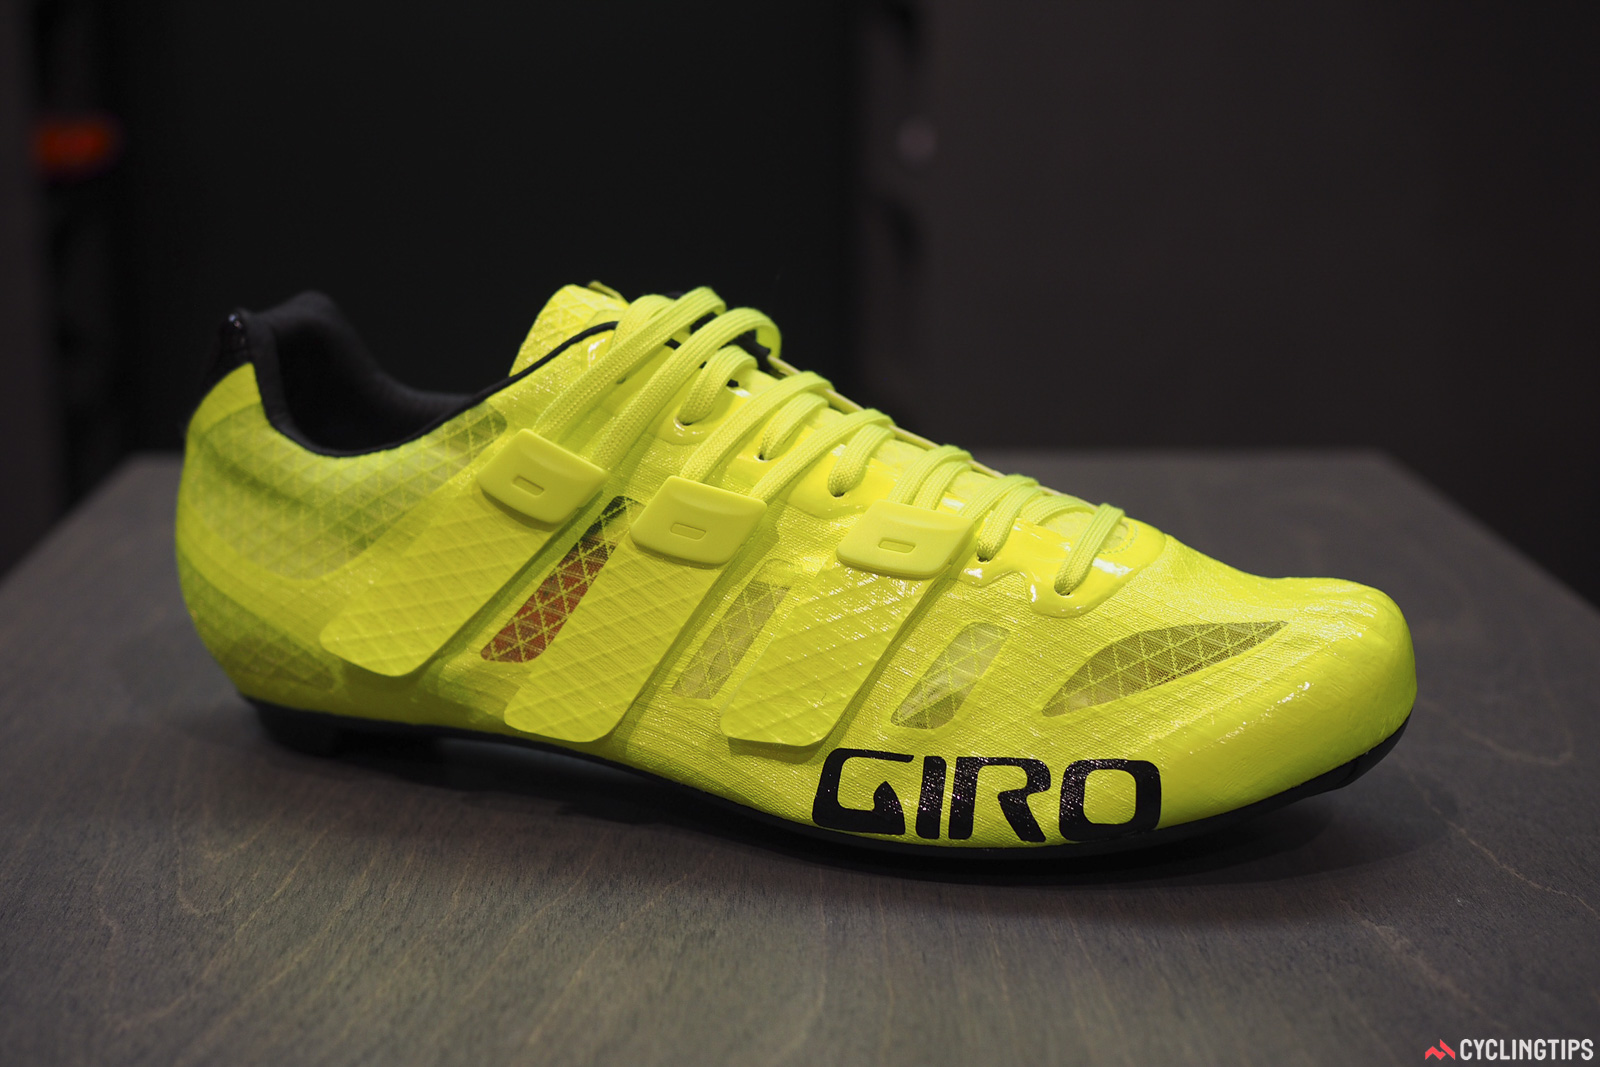 Giro previewed a new ultralight shoe at Eurobike called the Prolight Techlace. It uses the same Techlace closure concept as on the Factor Techlace that was launched last week, but in a dramatically pared-down form that weighs just 137g per shoe. The design still isn't completely finalized, though, and Giro estimates the production version will be more like 150g per size 42 shoe. Photo: James Huang.